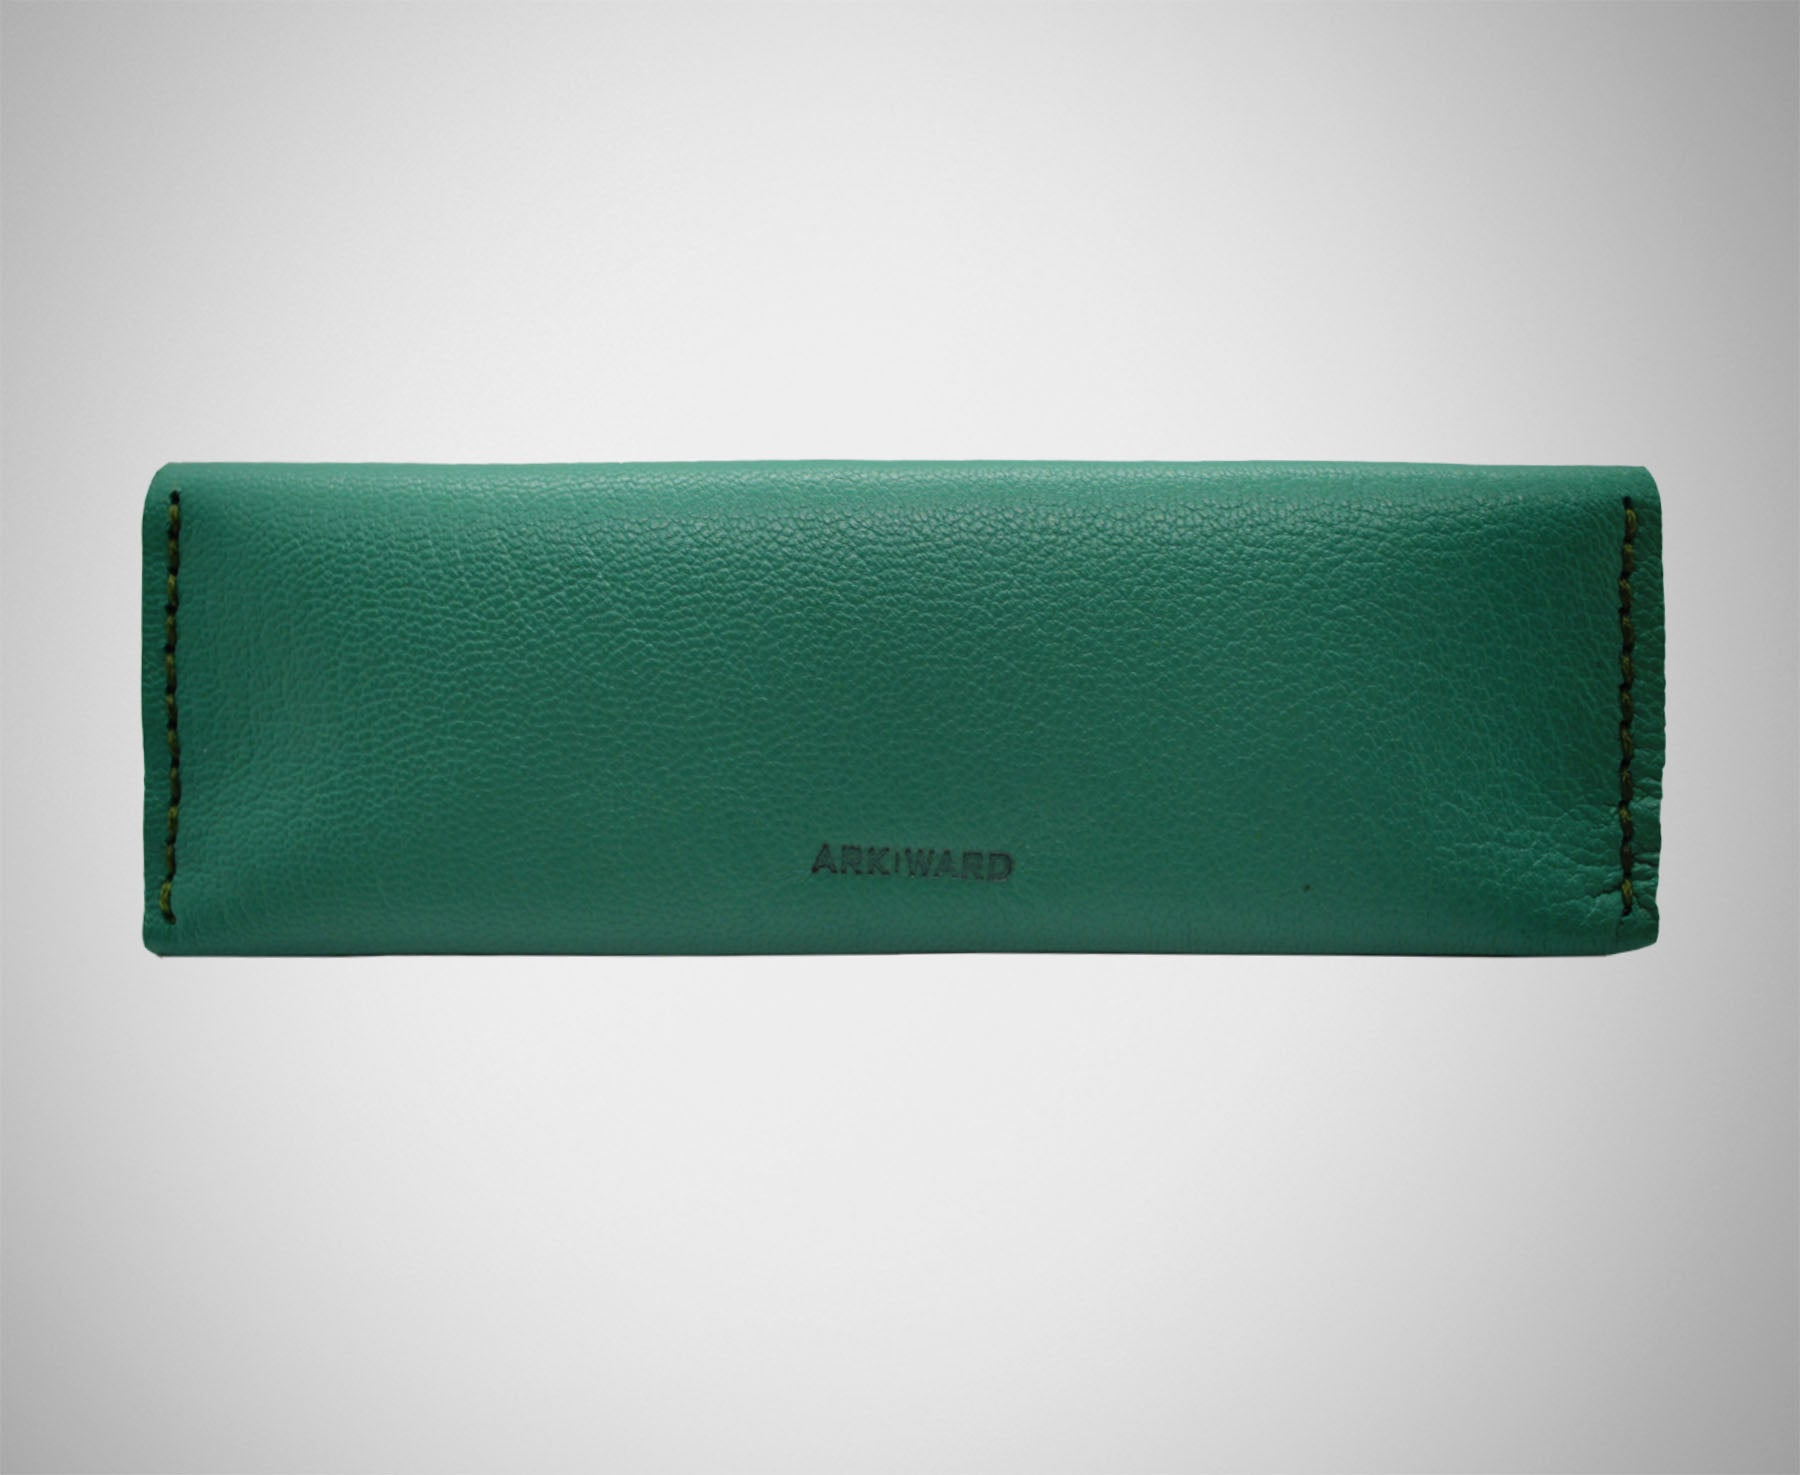 ARKWARD Teal Pen Pouch